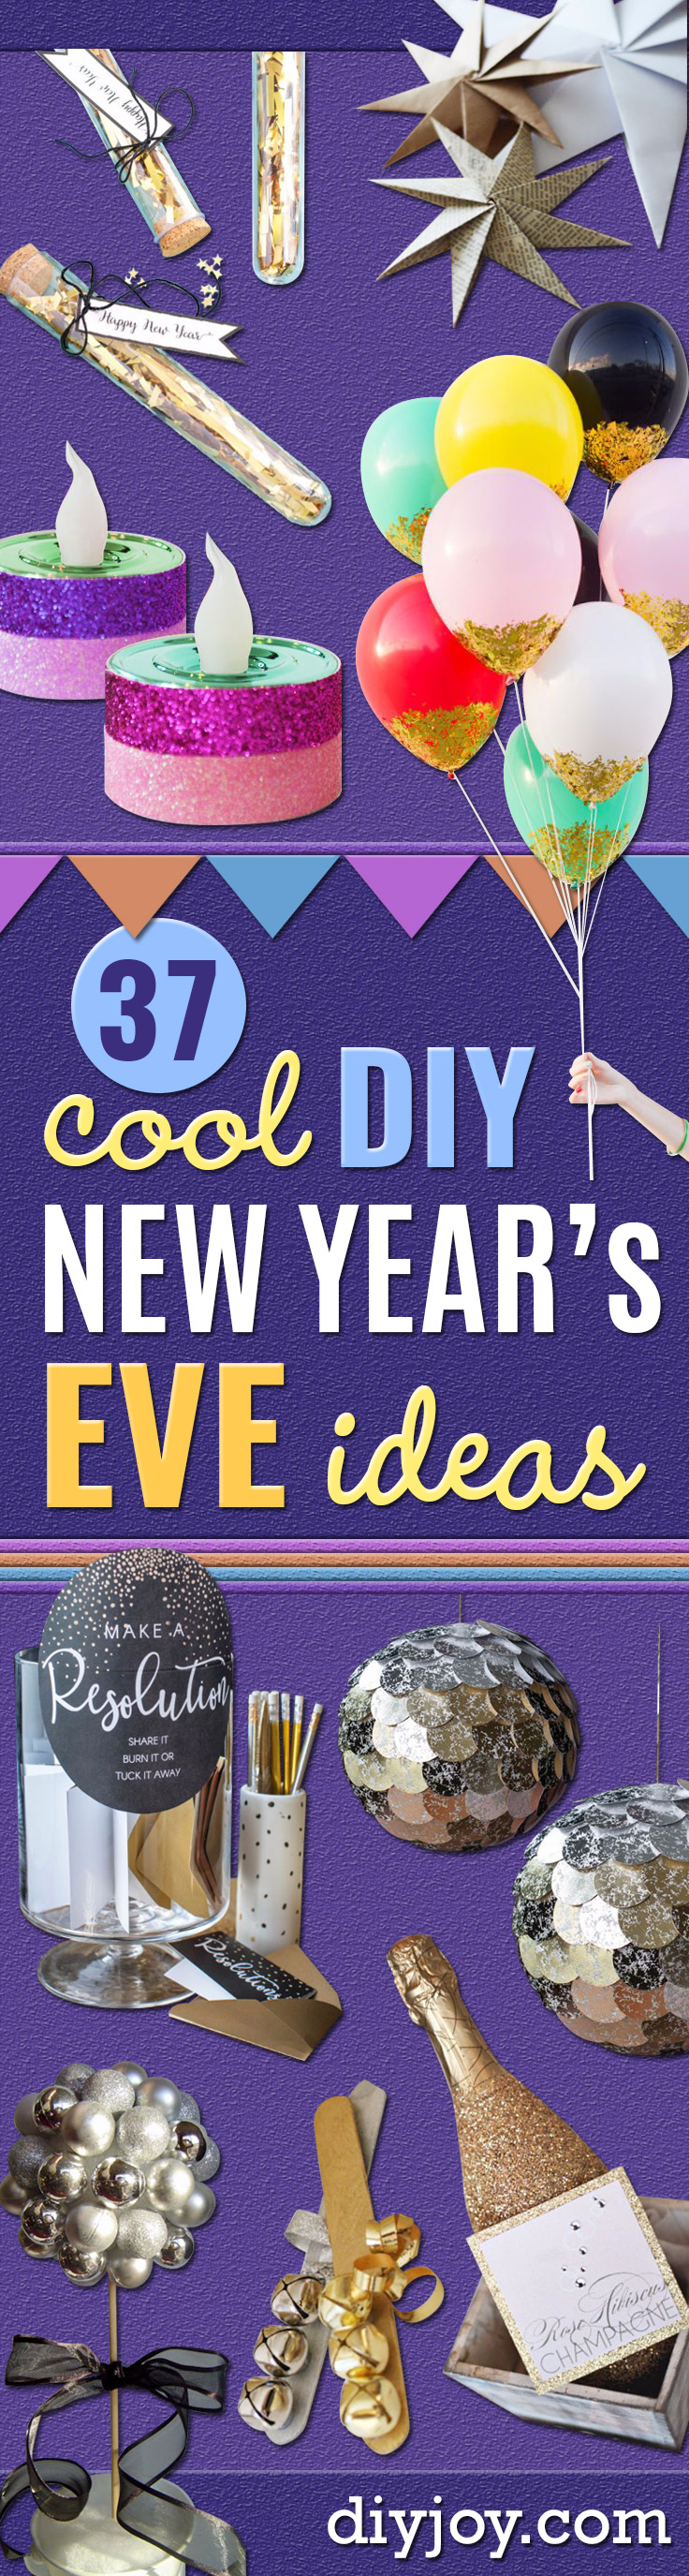 New Years Eve Decor Ideas - DIY New Year's Eve Decorations - Cheap Ideas for Banners, Balloons, Party Tables, Centerpieces and Festive Streamers and Lights - Cool Placecards, Photo Backdrops, Party Hats, Party Horns and Champagne Glasses - Cute Invitations, Games and Free Printables http://diyjoy.com/new-years-eve-decor-ideas